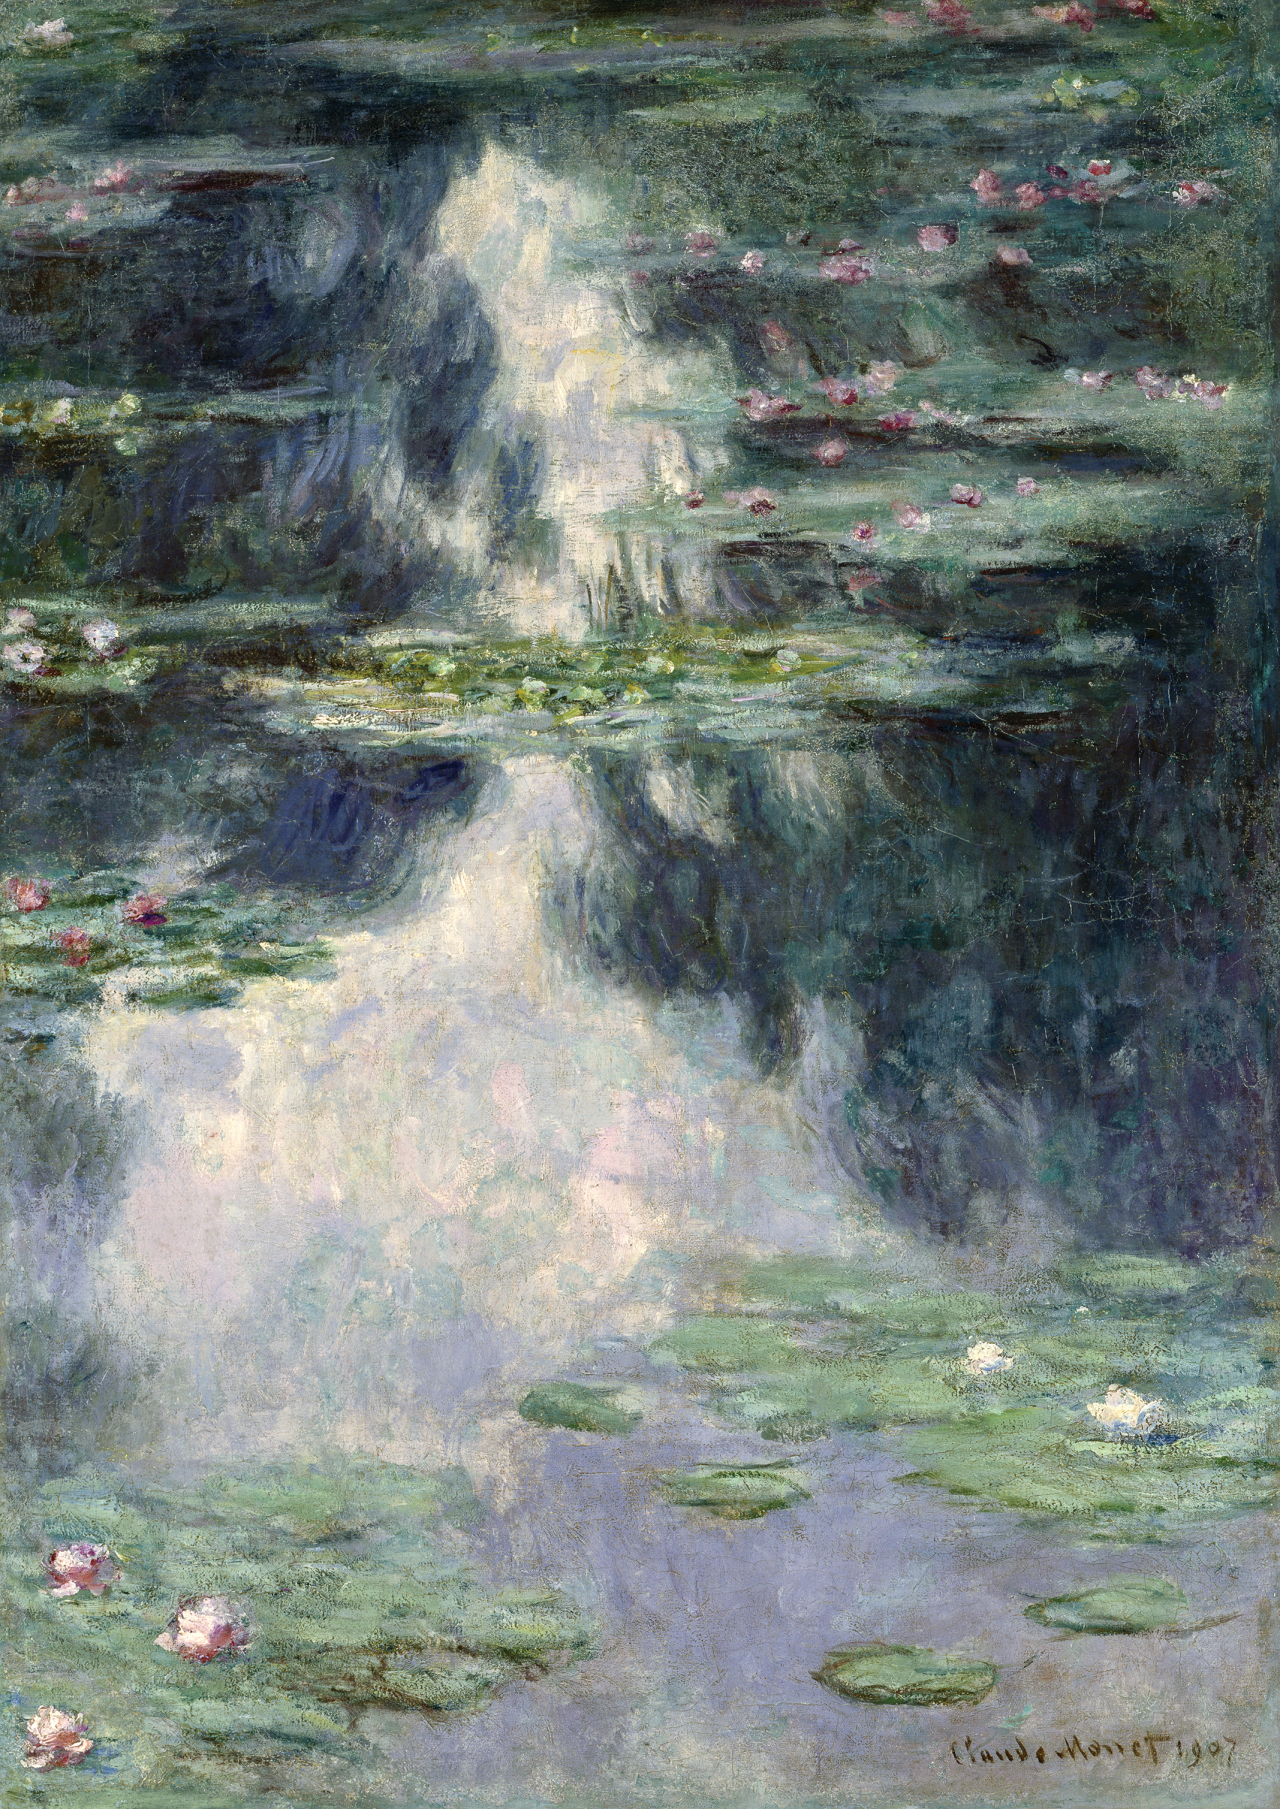 """Pond With Water Lilies"" by Claude Monet in 1907 (Seoul Arts Center)"